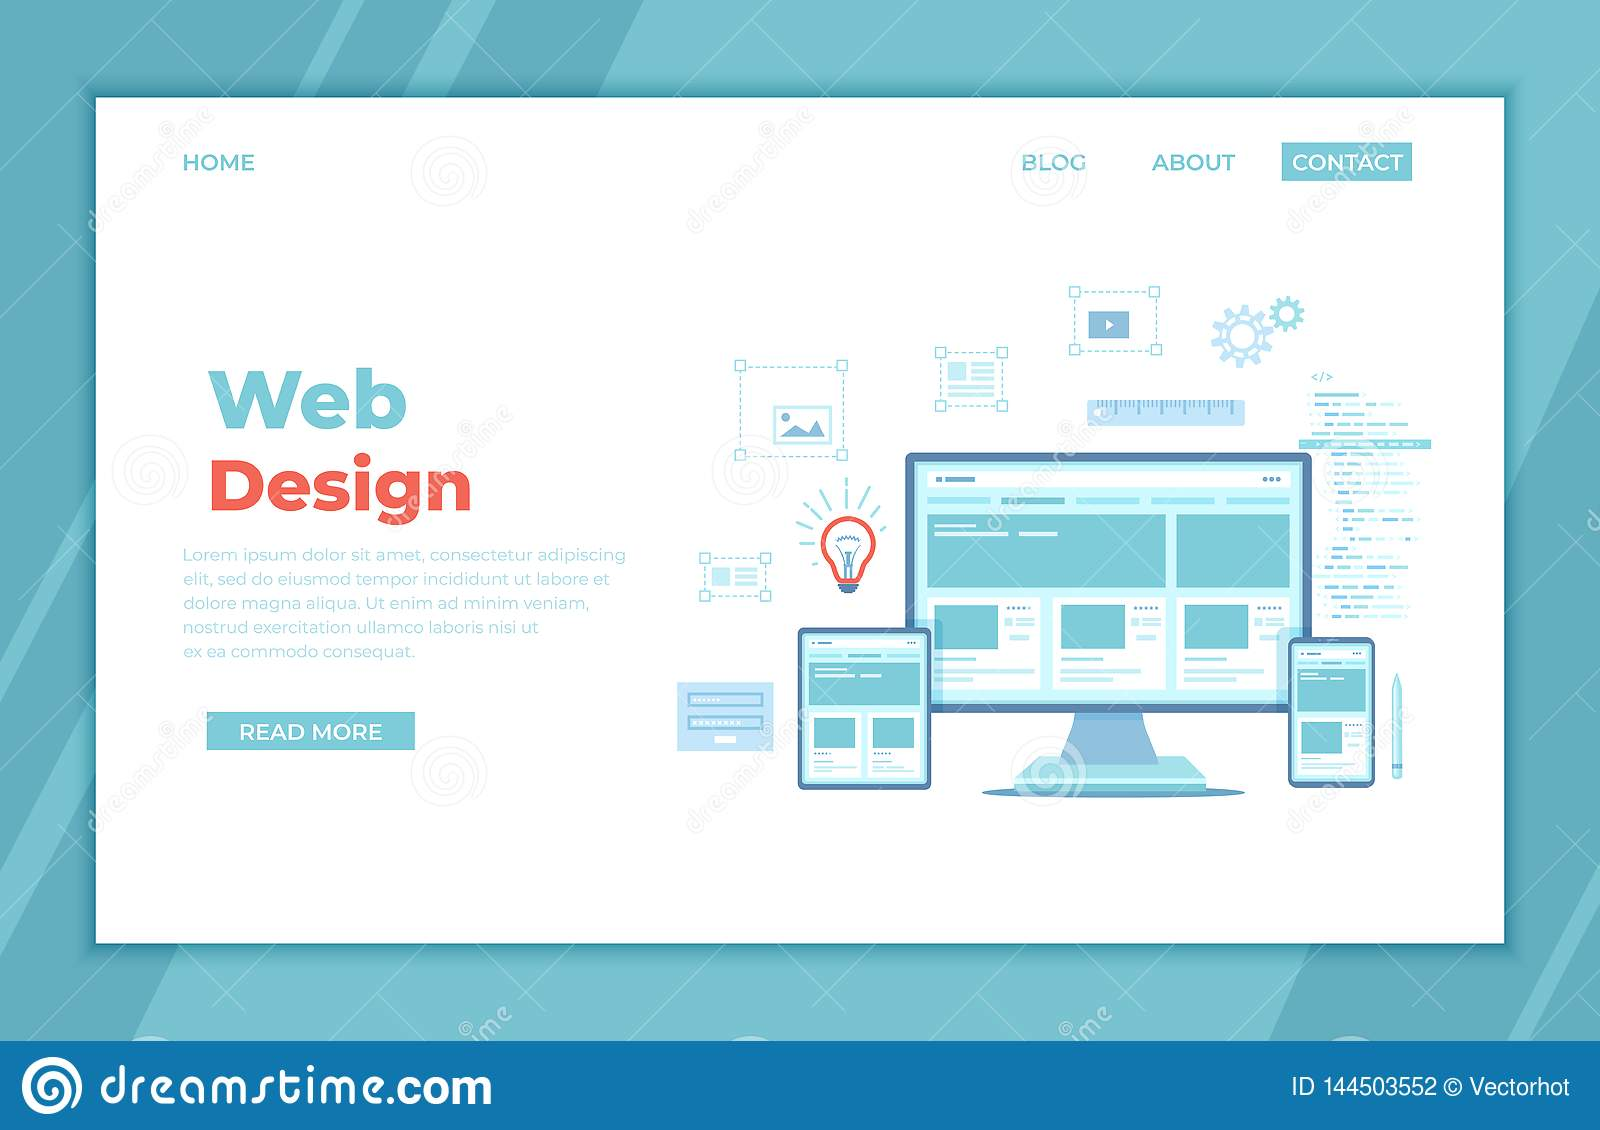 Web Design. Website template for monitor, laptop, tablet, phone. Elements for mobile and web applications. User Interface UI UX